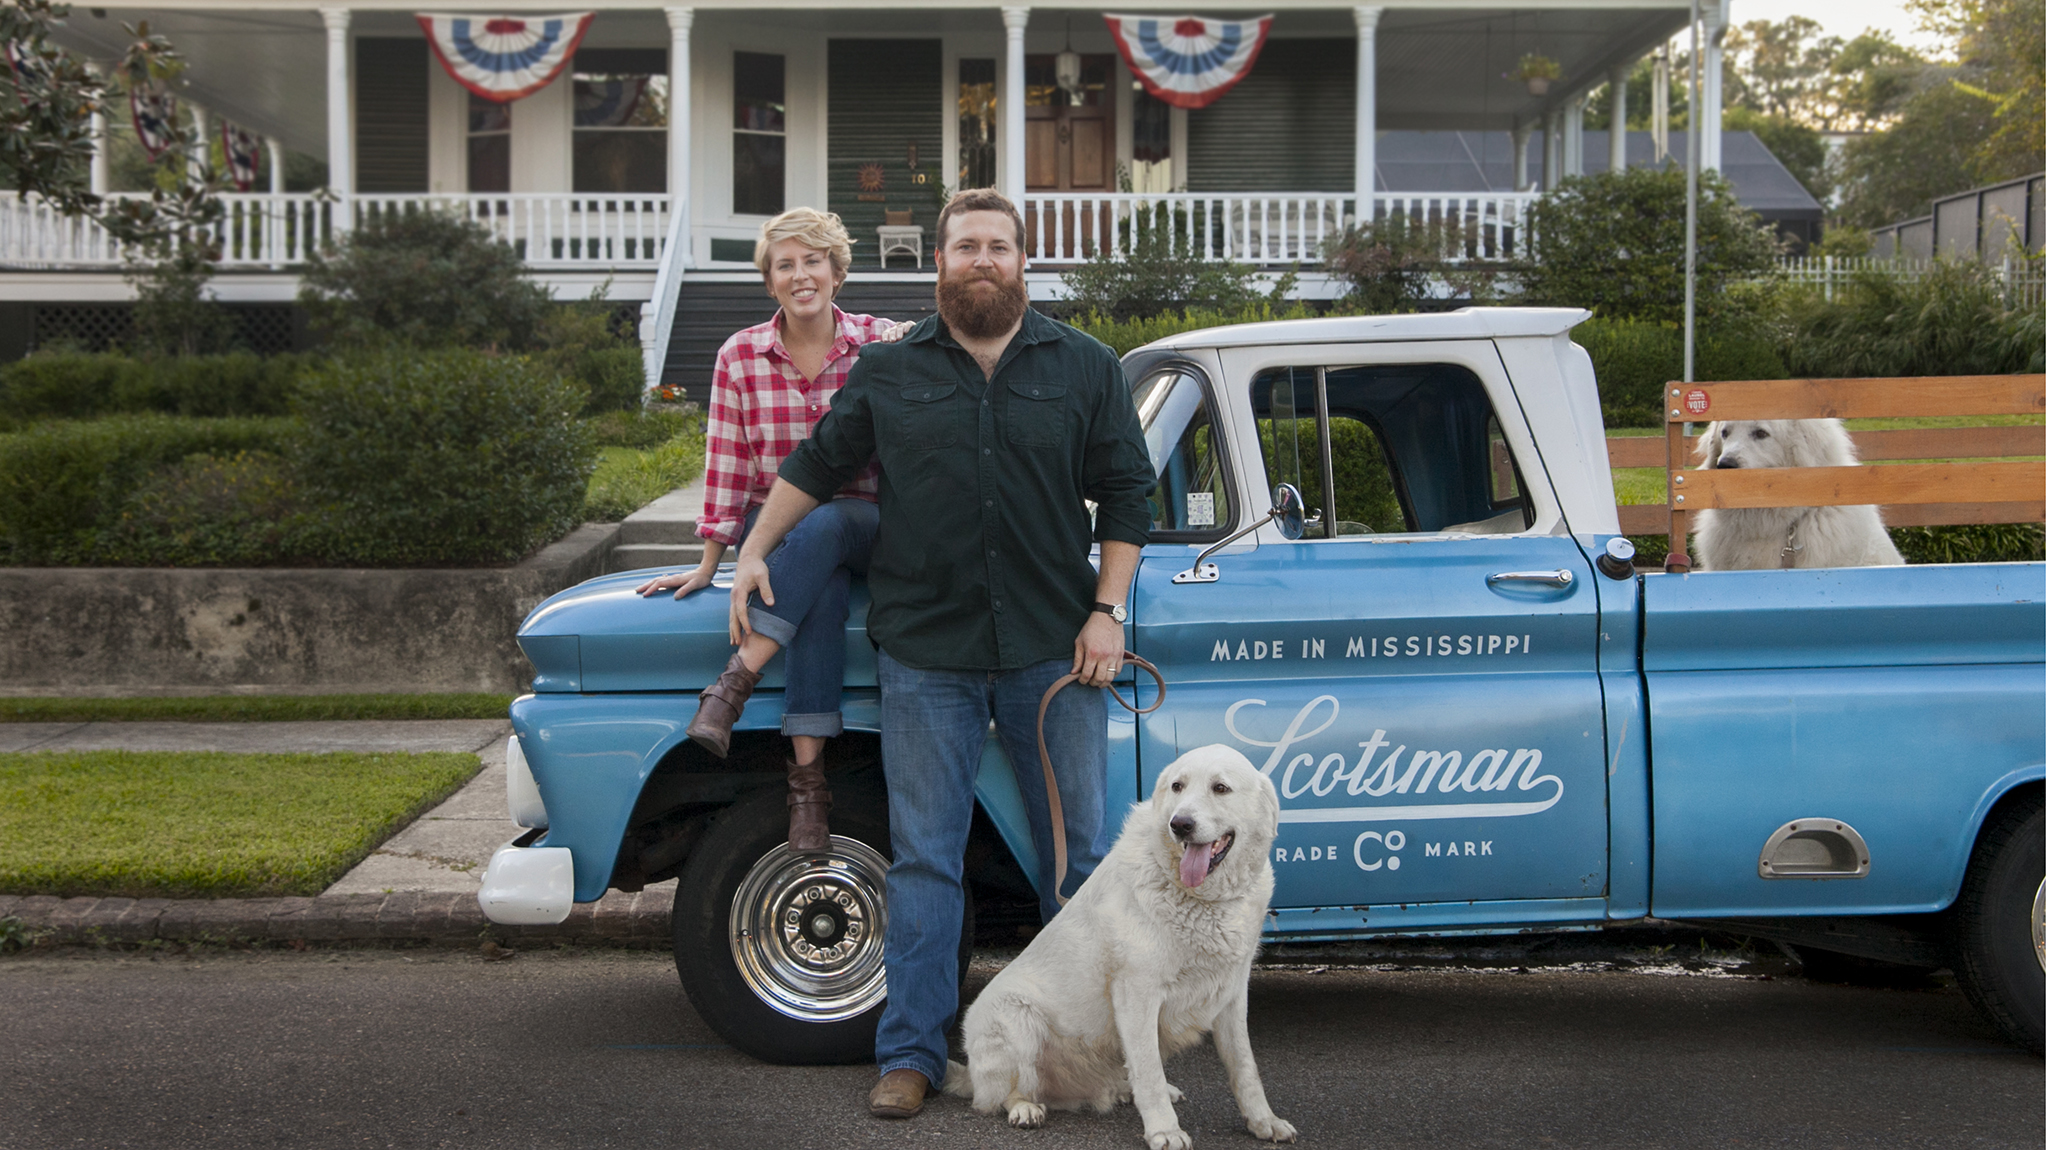 Hgtv Pilot Episode Of Home Town Hosted By Two Ole Miss Alumni Ole Miss News